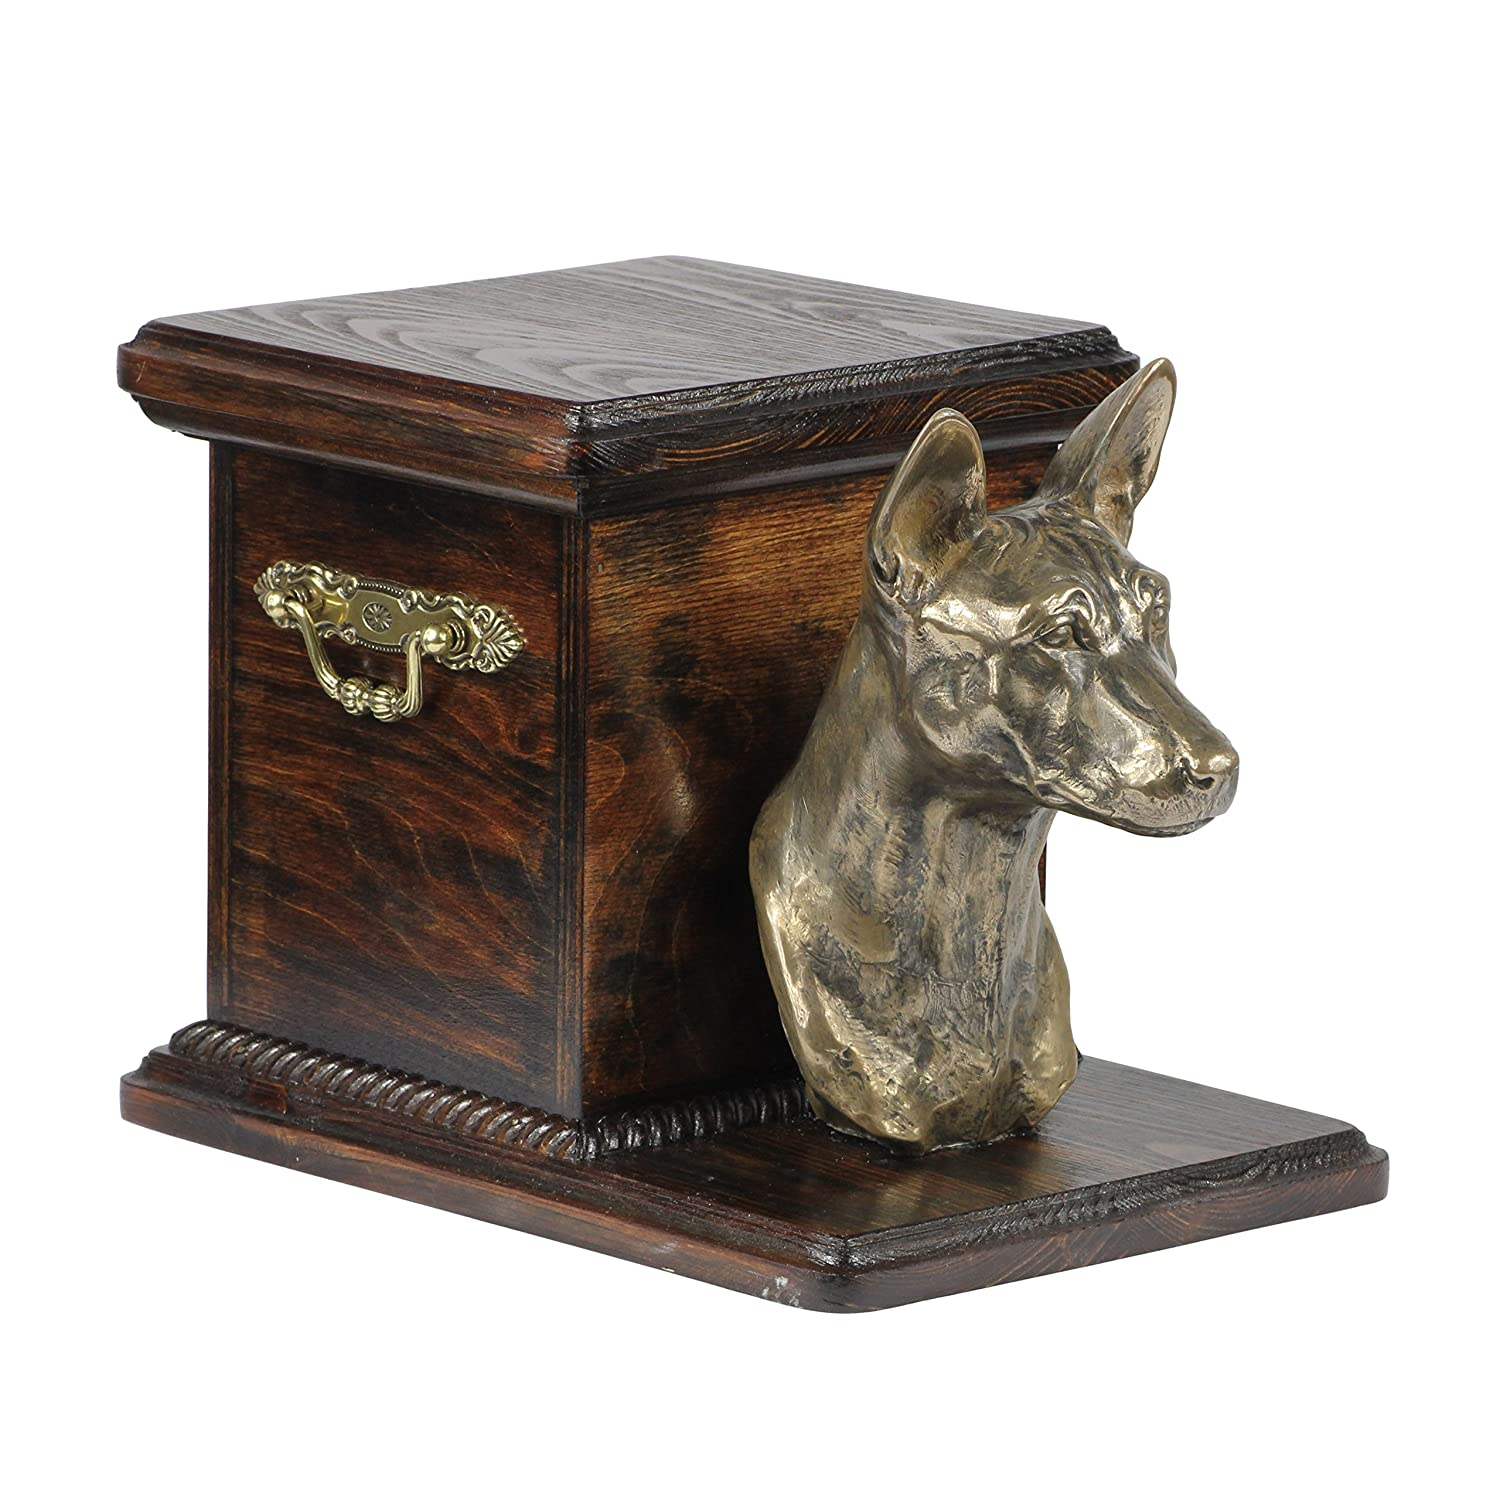 Basenji, memorial, urn for dog's ashes, with dog statue, ArtDog